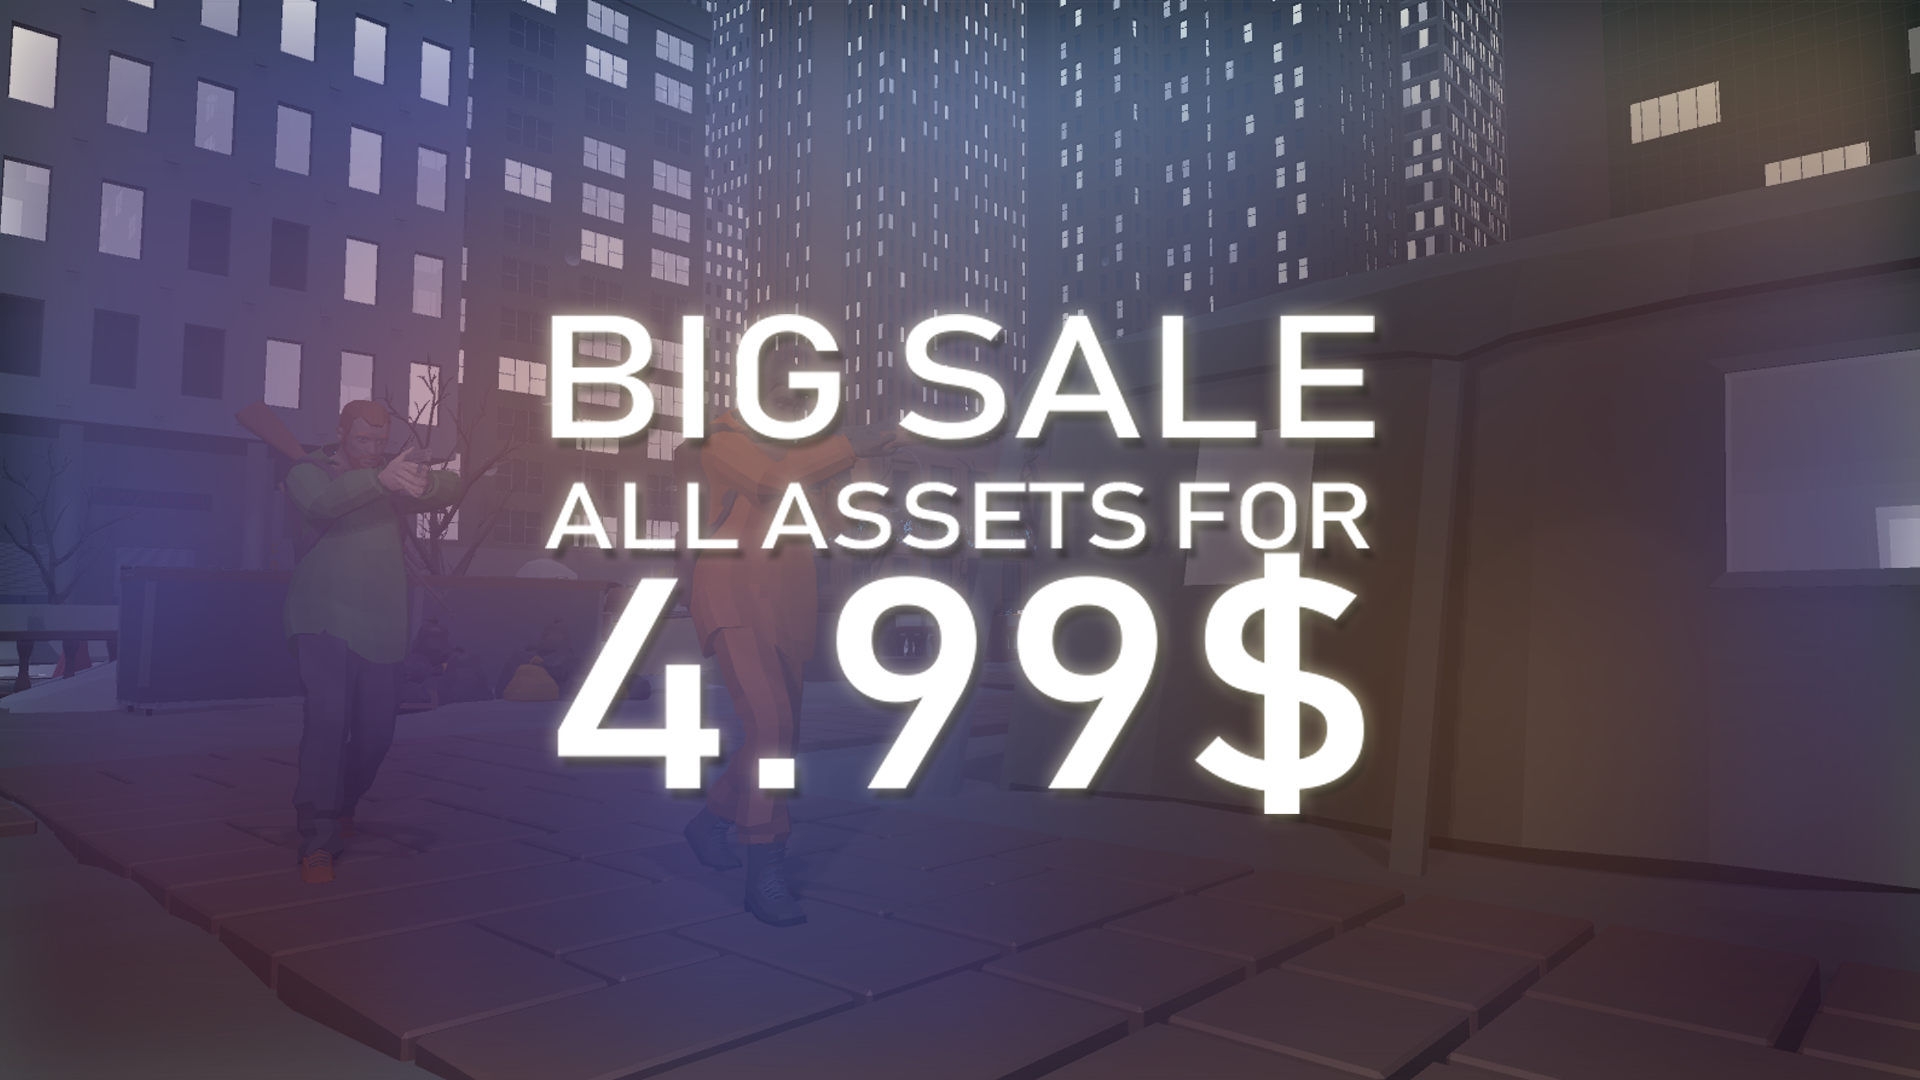 SALE! All assets for $4.99